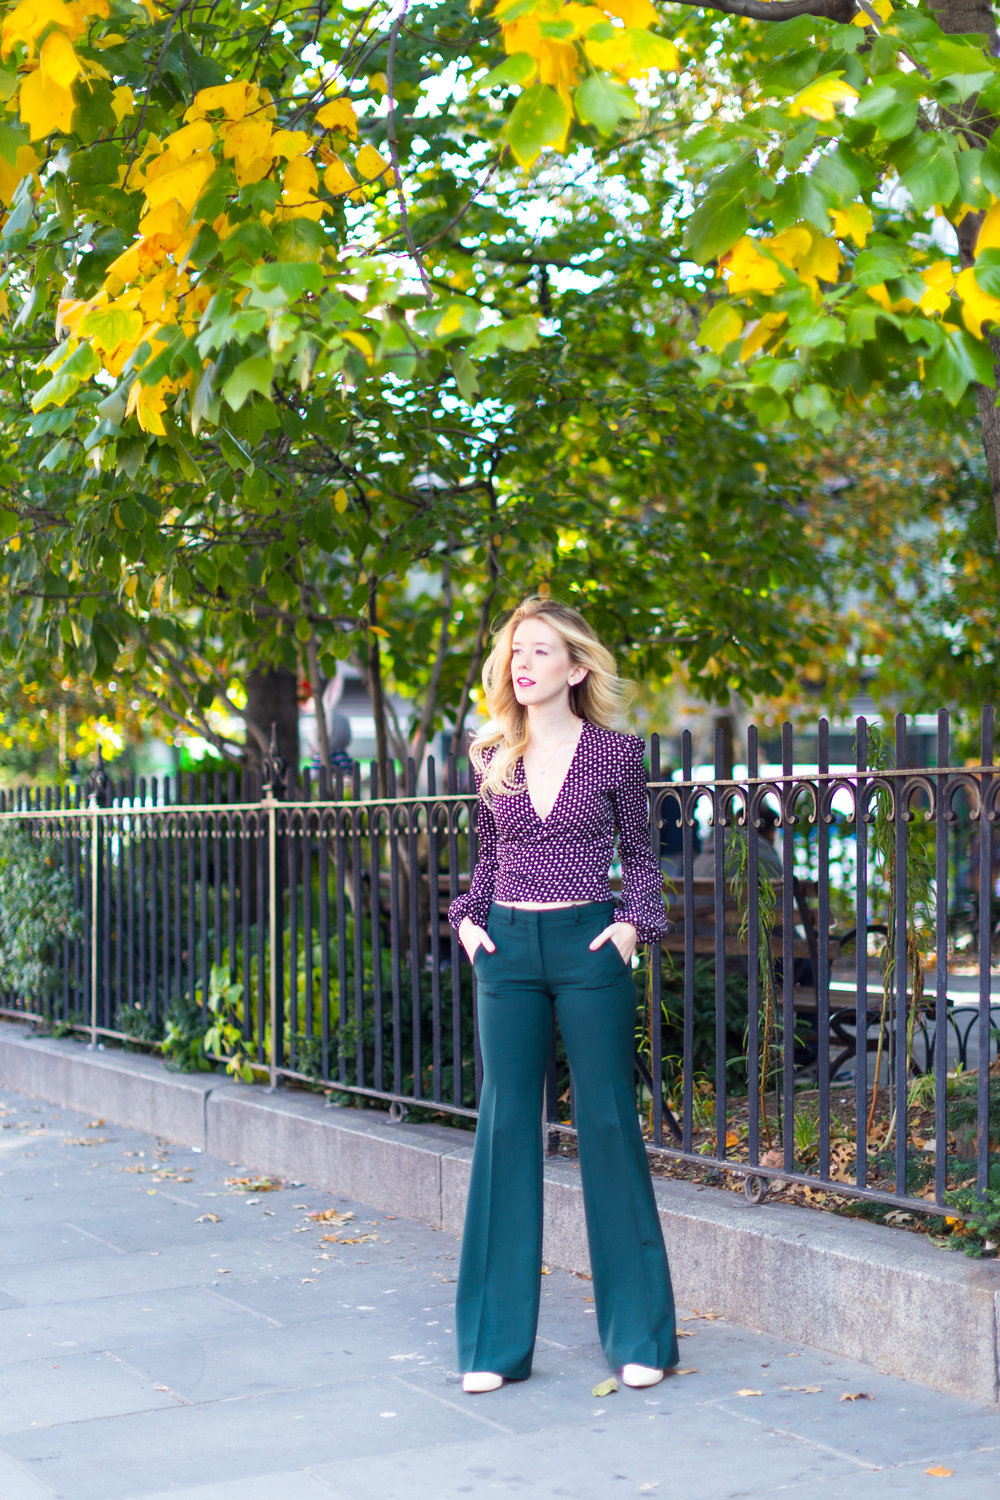 NYC Fall Fashion Trends Wrap Top Flare Pants-6.jpg